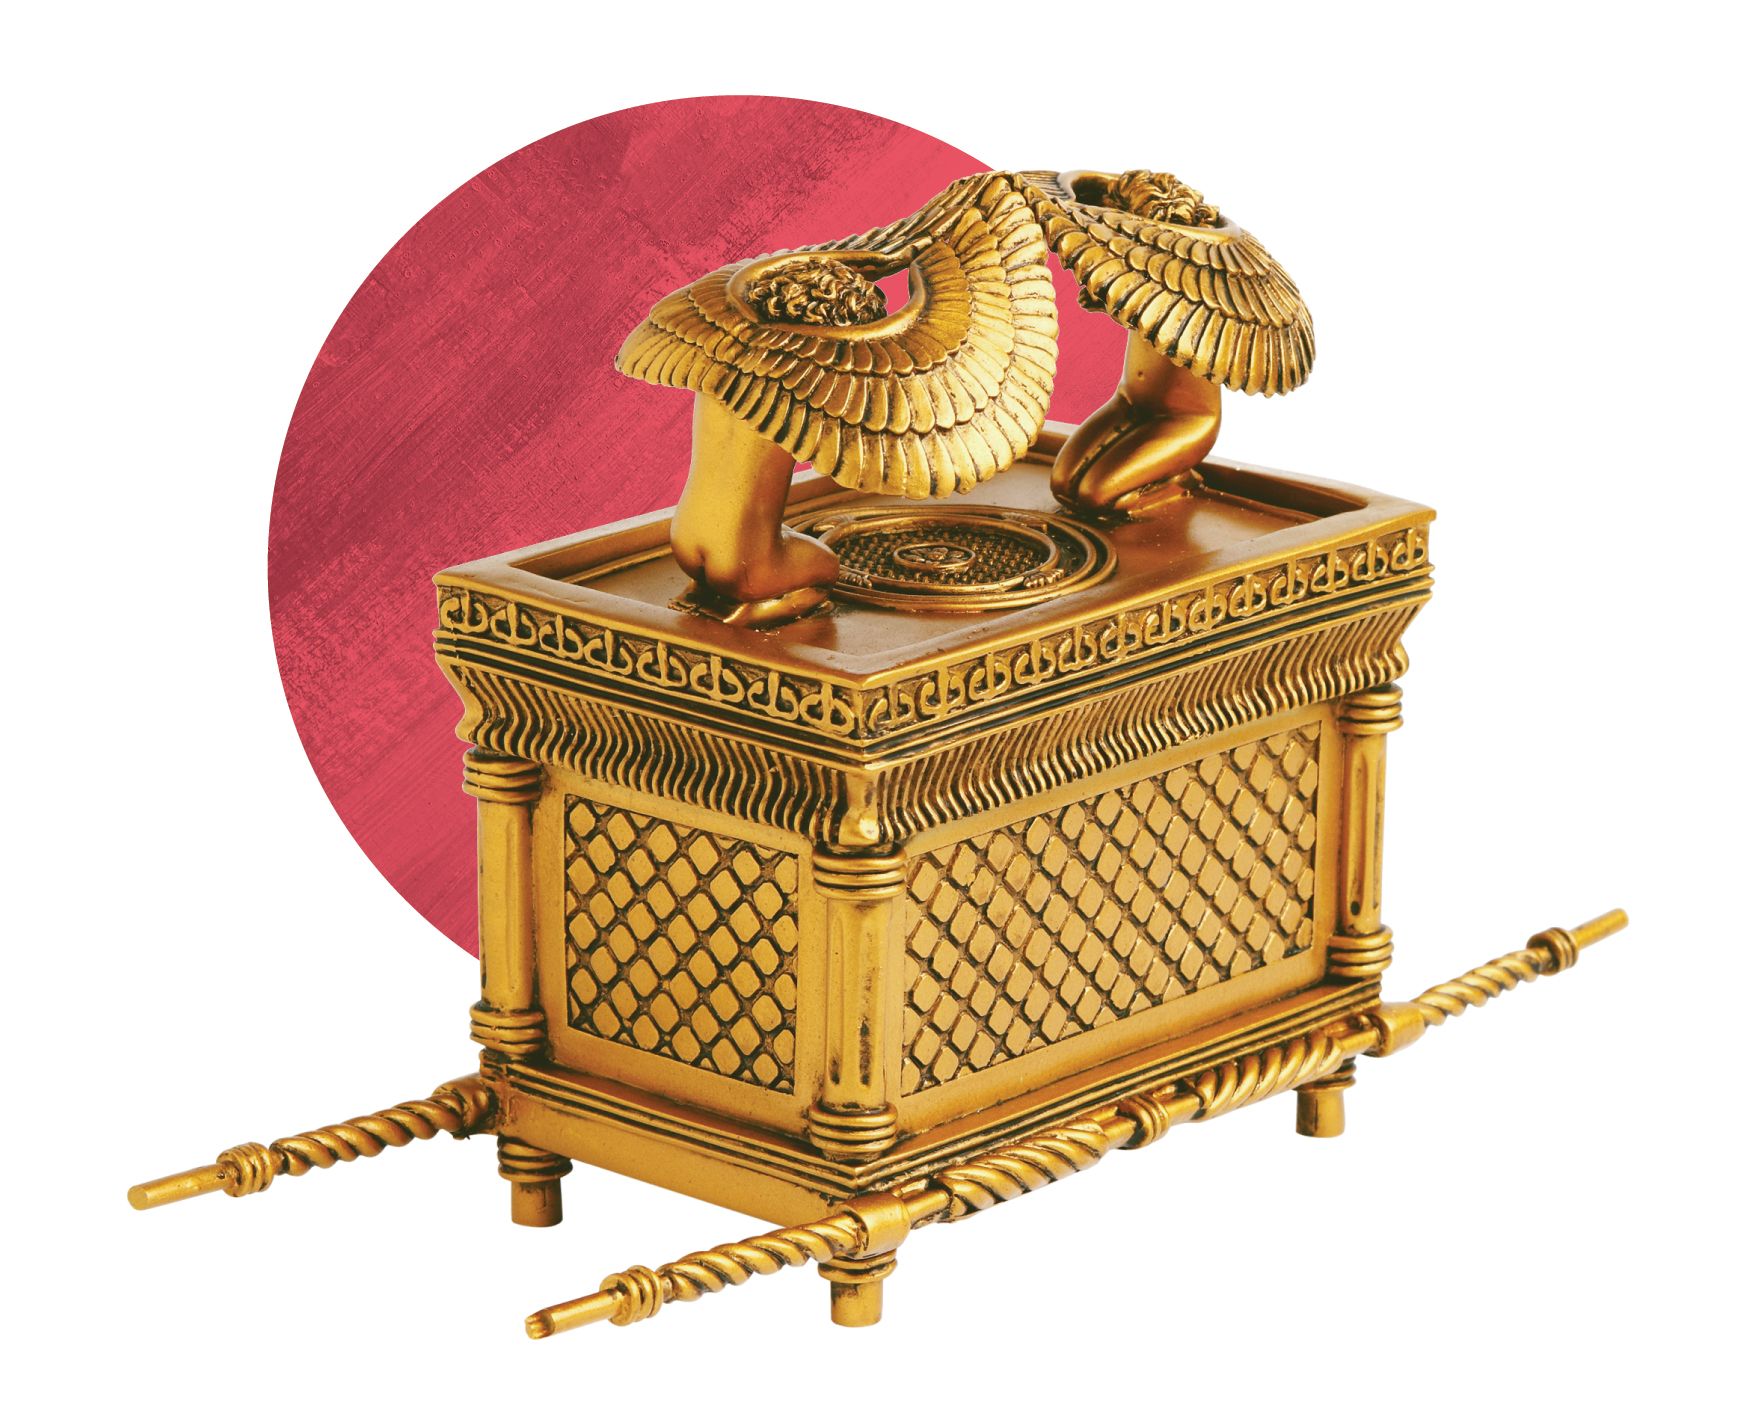 Image credit: George Dukines / Shutterstock.    The Ark of the Covenant   As a symbol of God's presence with Israel, the ark of the covenant was the center of Yahweh worship. It was brought into the temple each year at Passover (Psa 24:7–9). The ark moved with God's people during the wilderness wanderings, was temporarily housed at Shiloh, and eventually dwelled in Solomon's temple. Image created based on Exodus 25:10-22 .